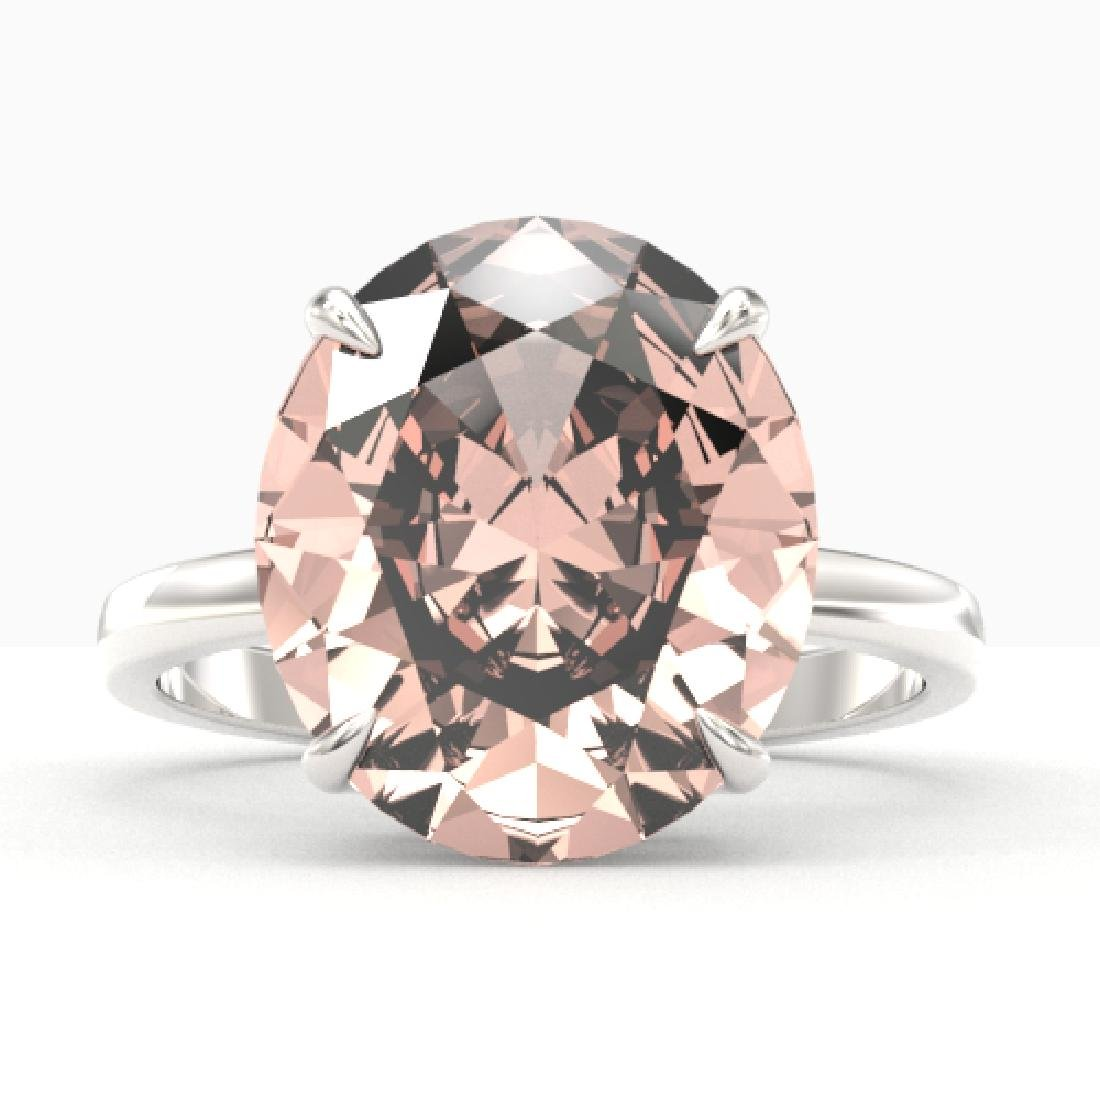 9 CTW Morganite Designer Solitaire Engagement Ring 18K